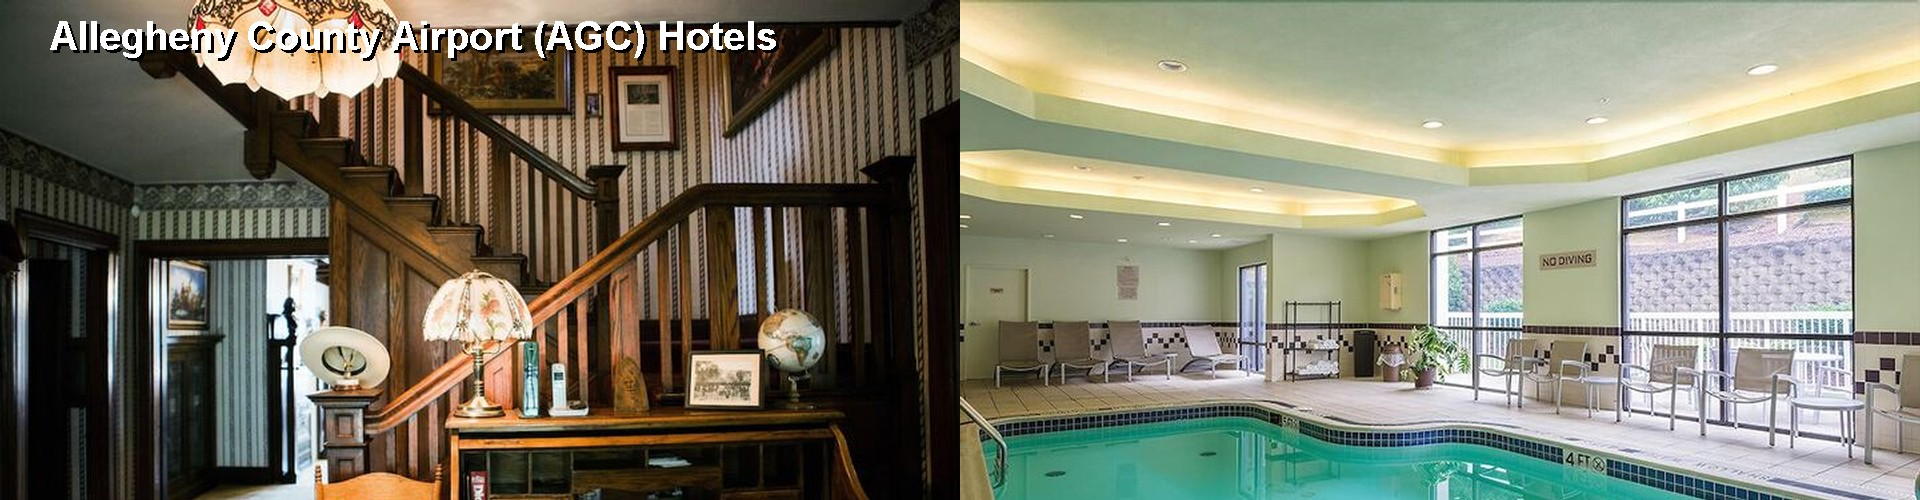 5 Best Hotels near Allegheny County Airport (AGC)